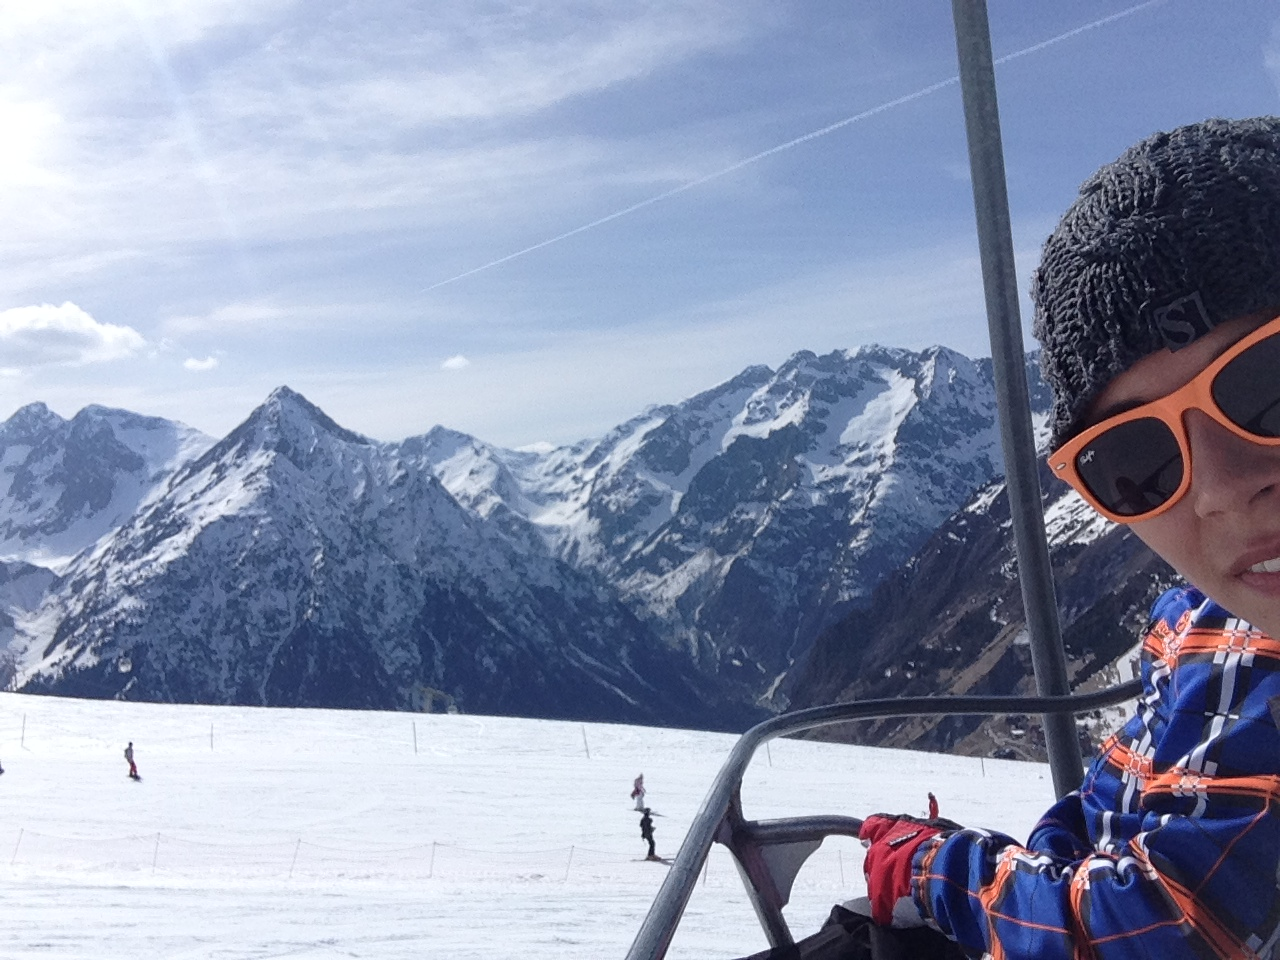 Snowboarding in the French Alps